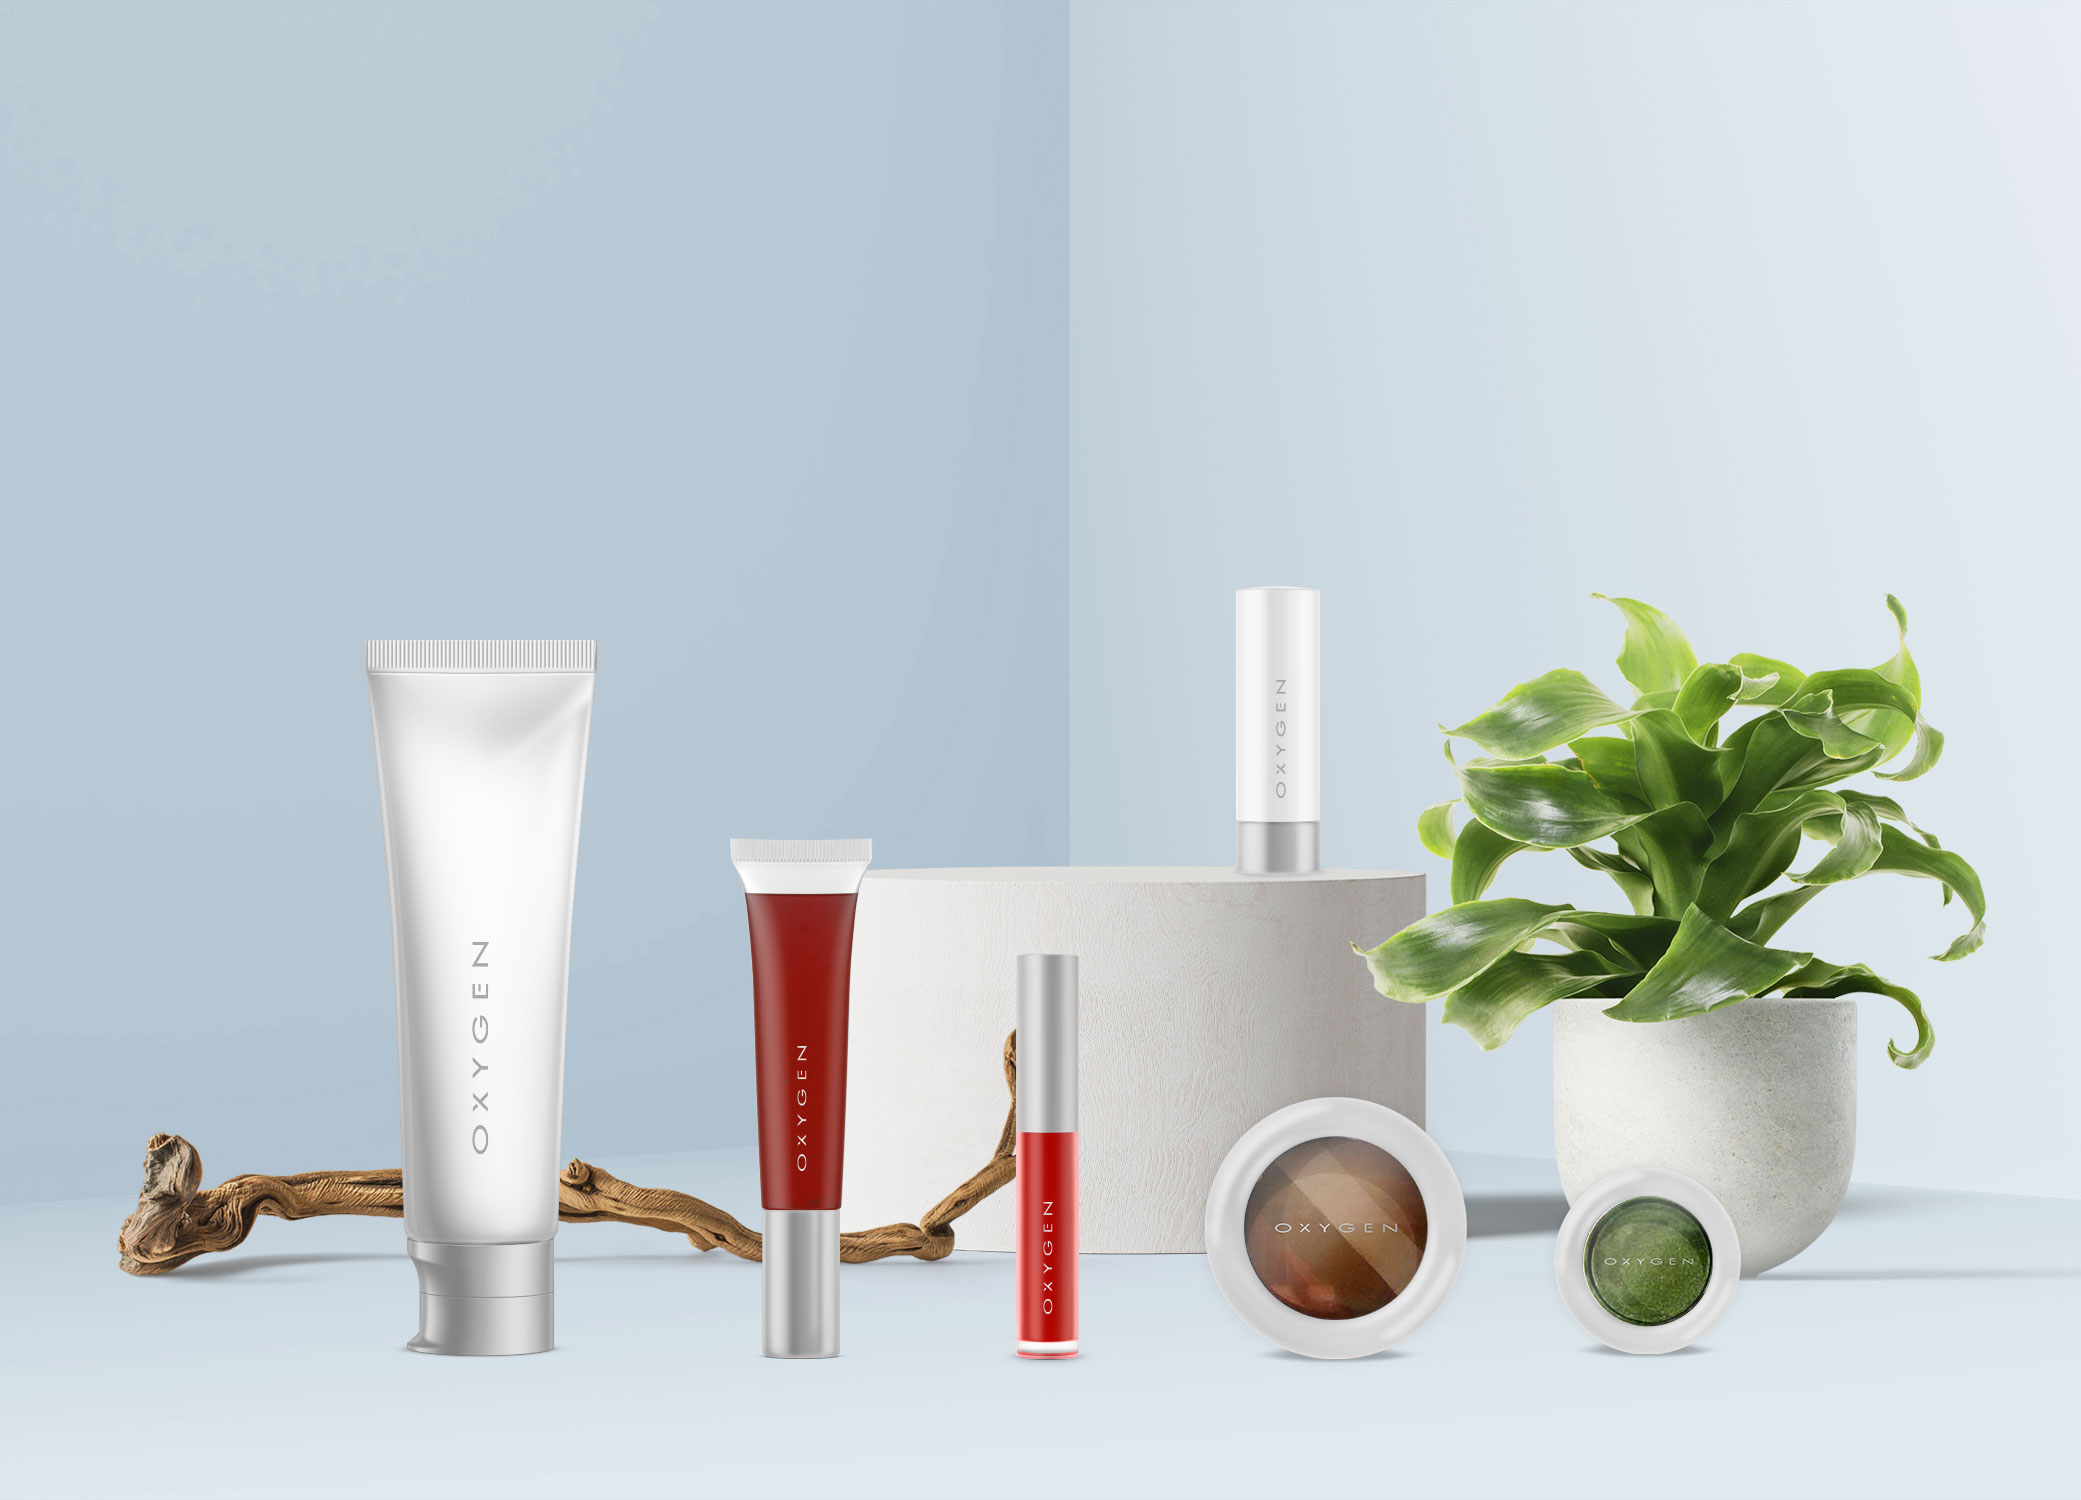 Oxygen package design showing range of makeup and skincare product containers in matte white with silver accents.